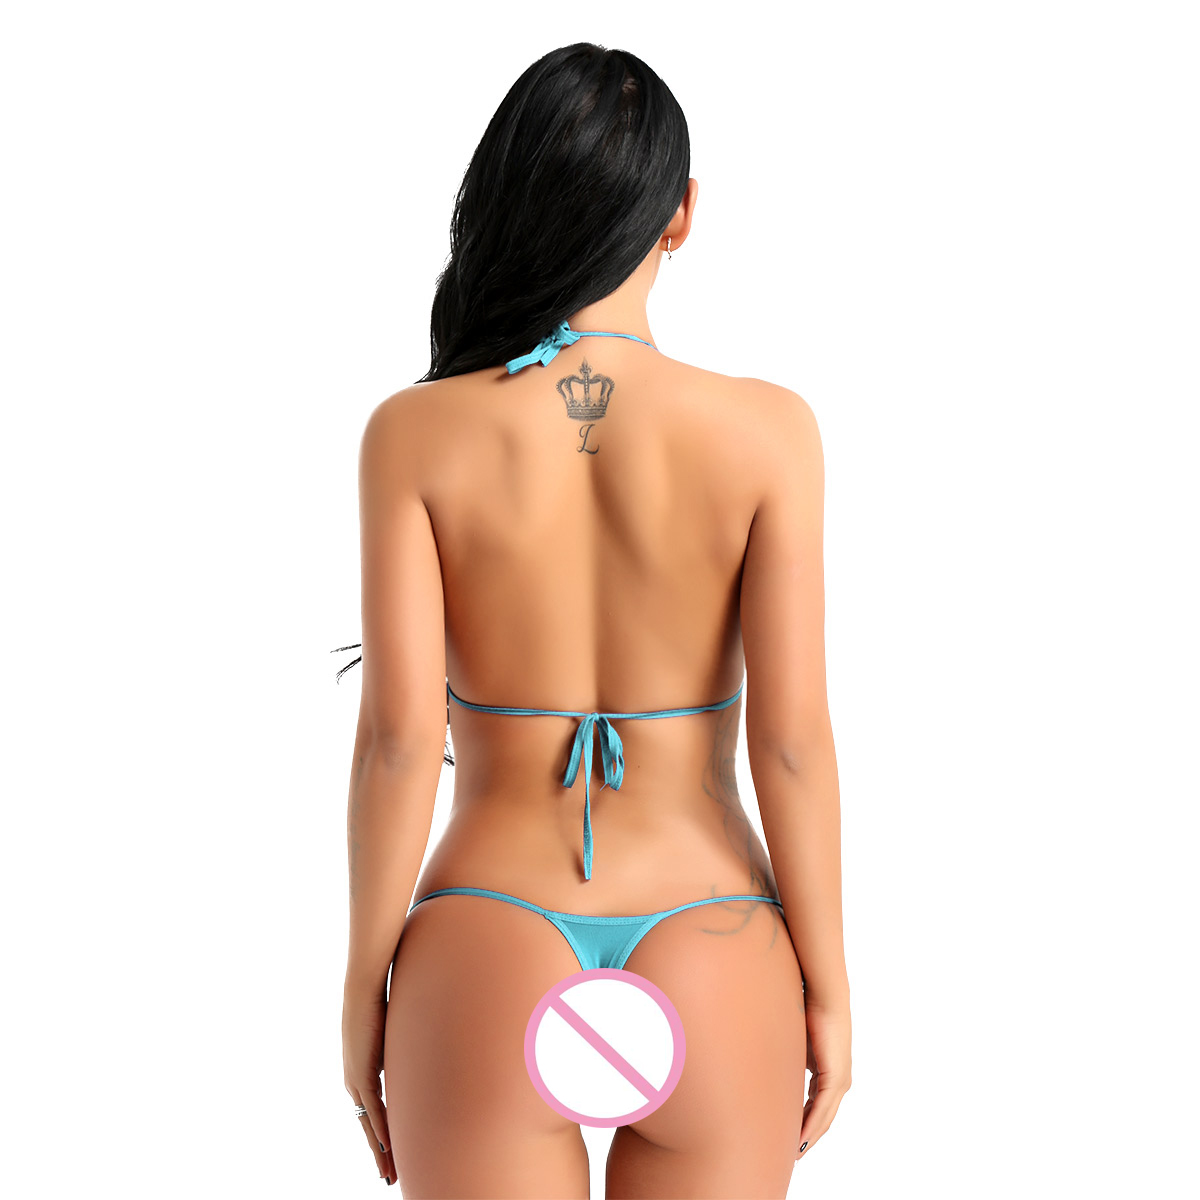 Womens Intimate Lingerie Set Solid Color Halterneck Mini Micro Bikini Bra Top with G-String Briefs Underwear Sexy Party Show